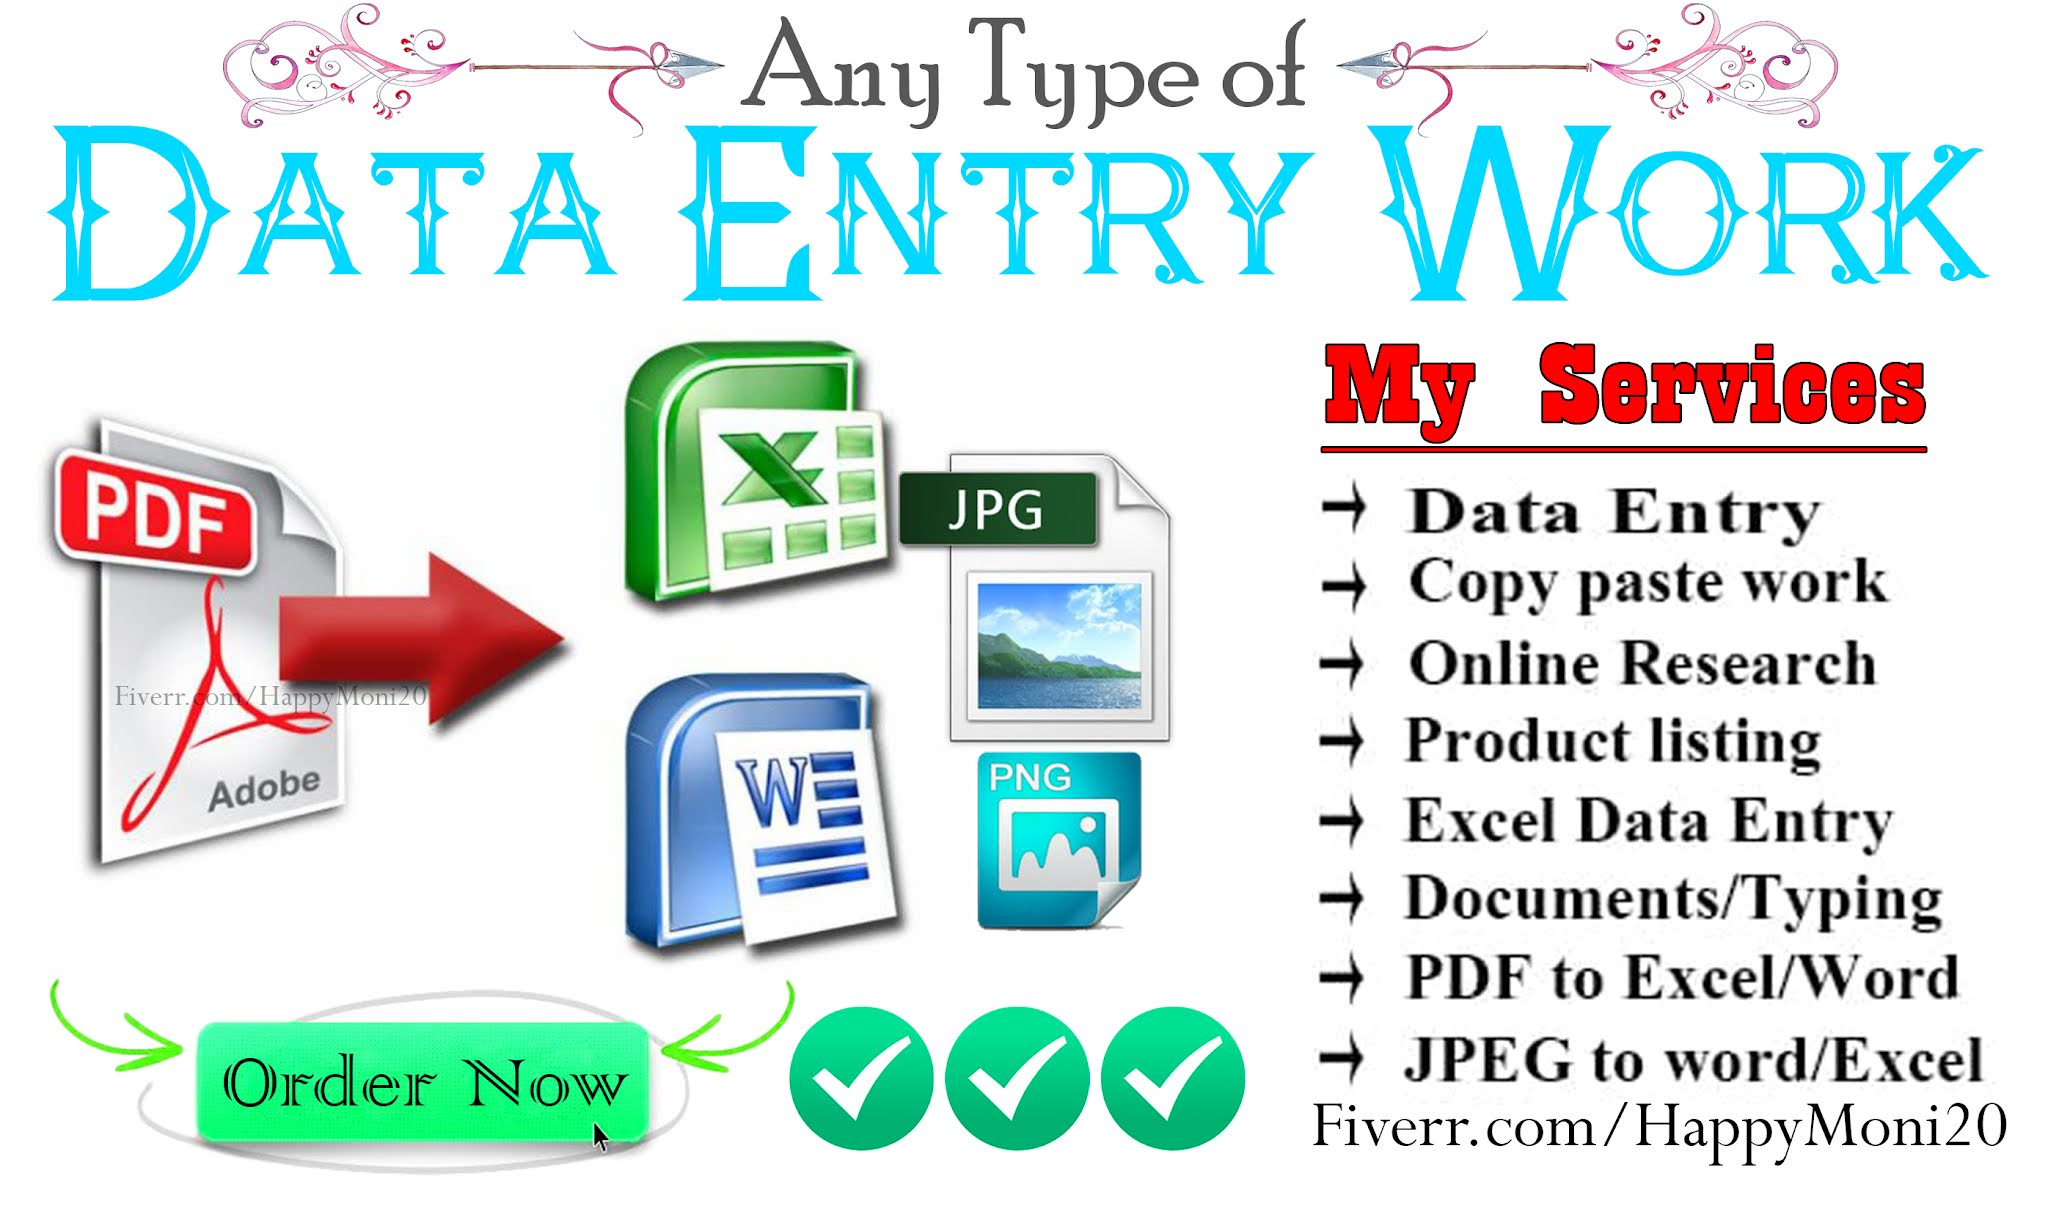 I will do any type of data entry work PDF to word